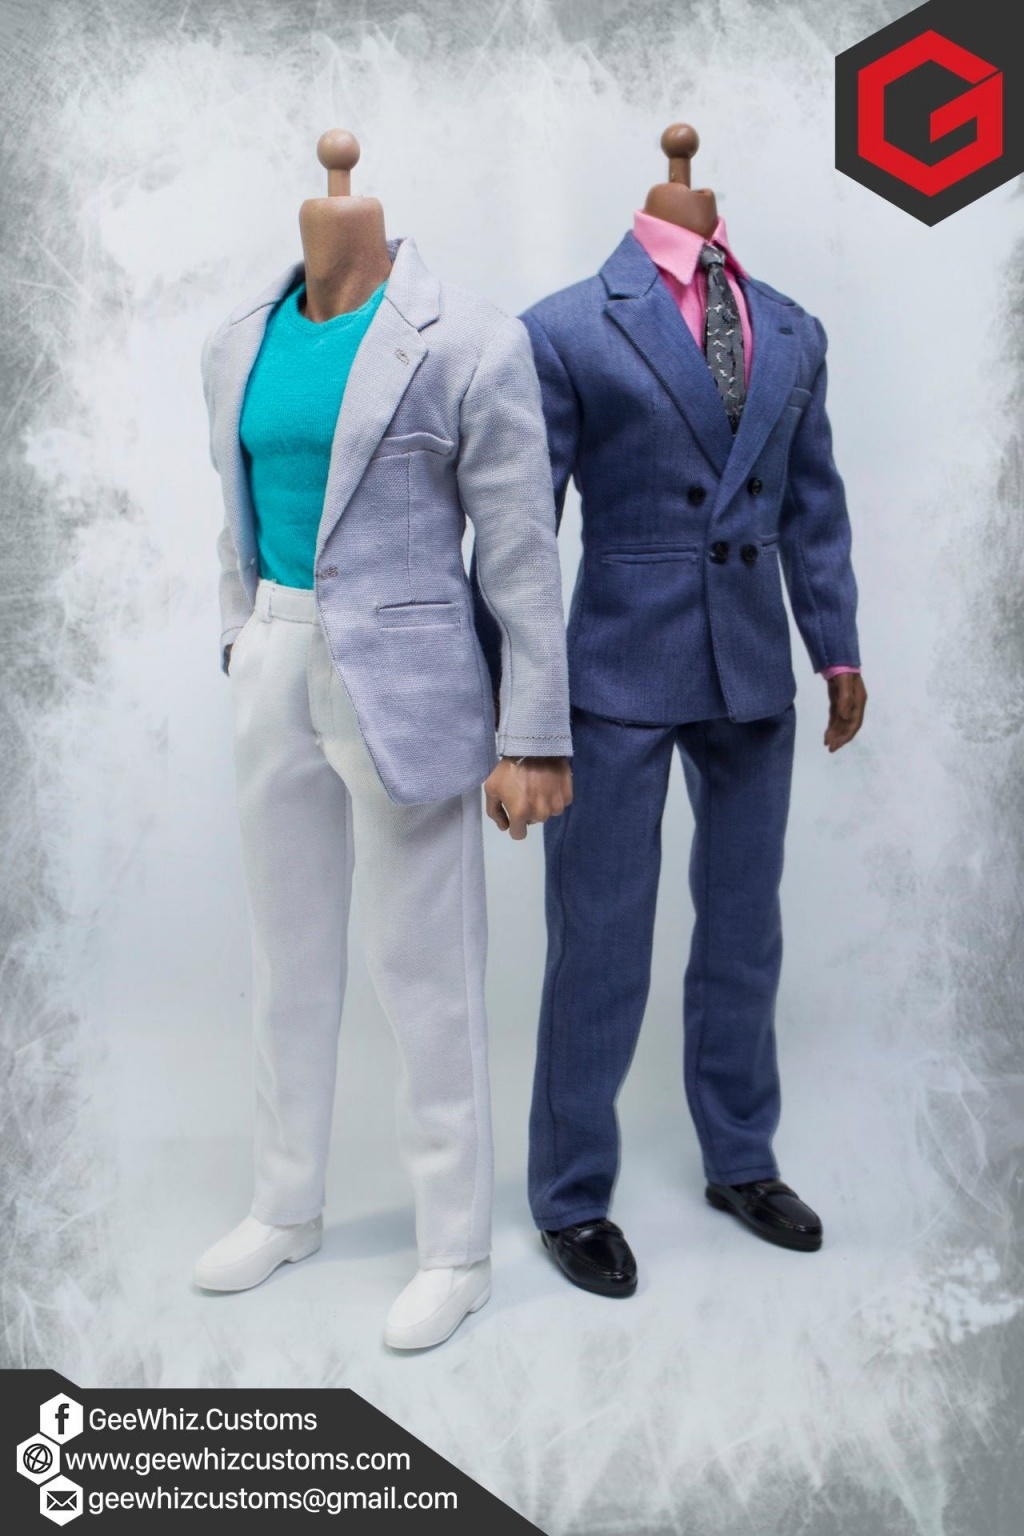 geewhiz customs miami vice crockket and tubbs 1 6 scale clothing commission